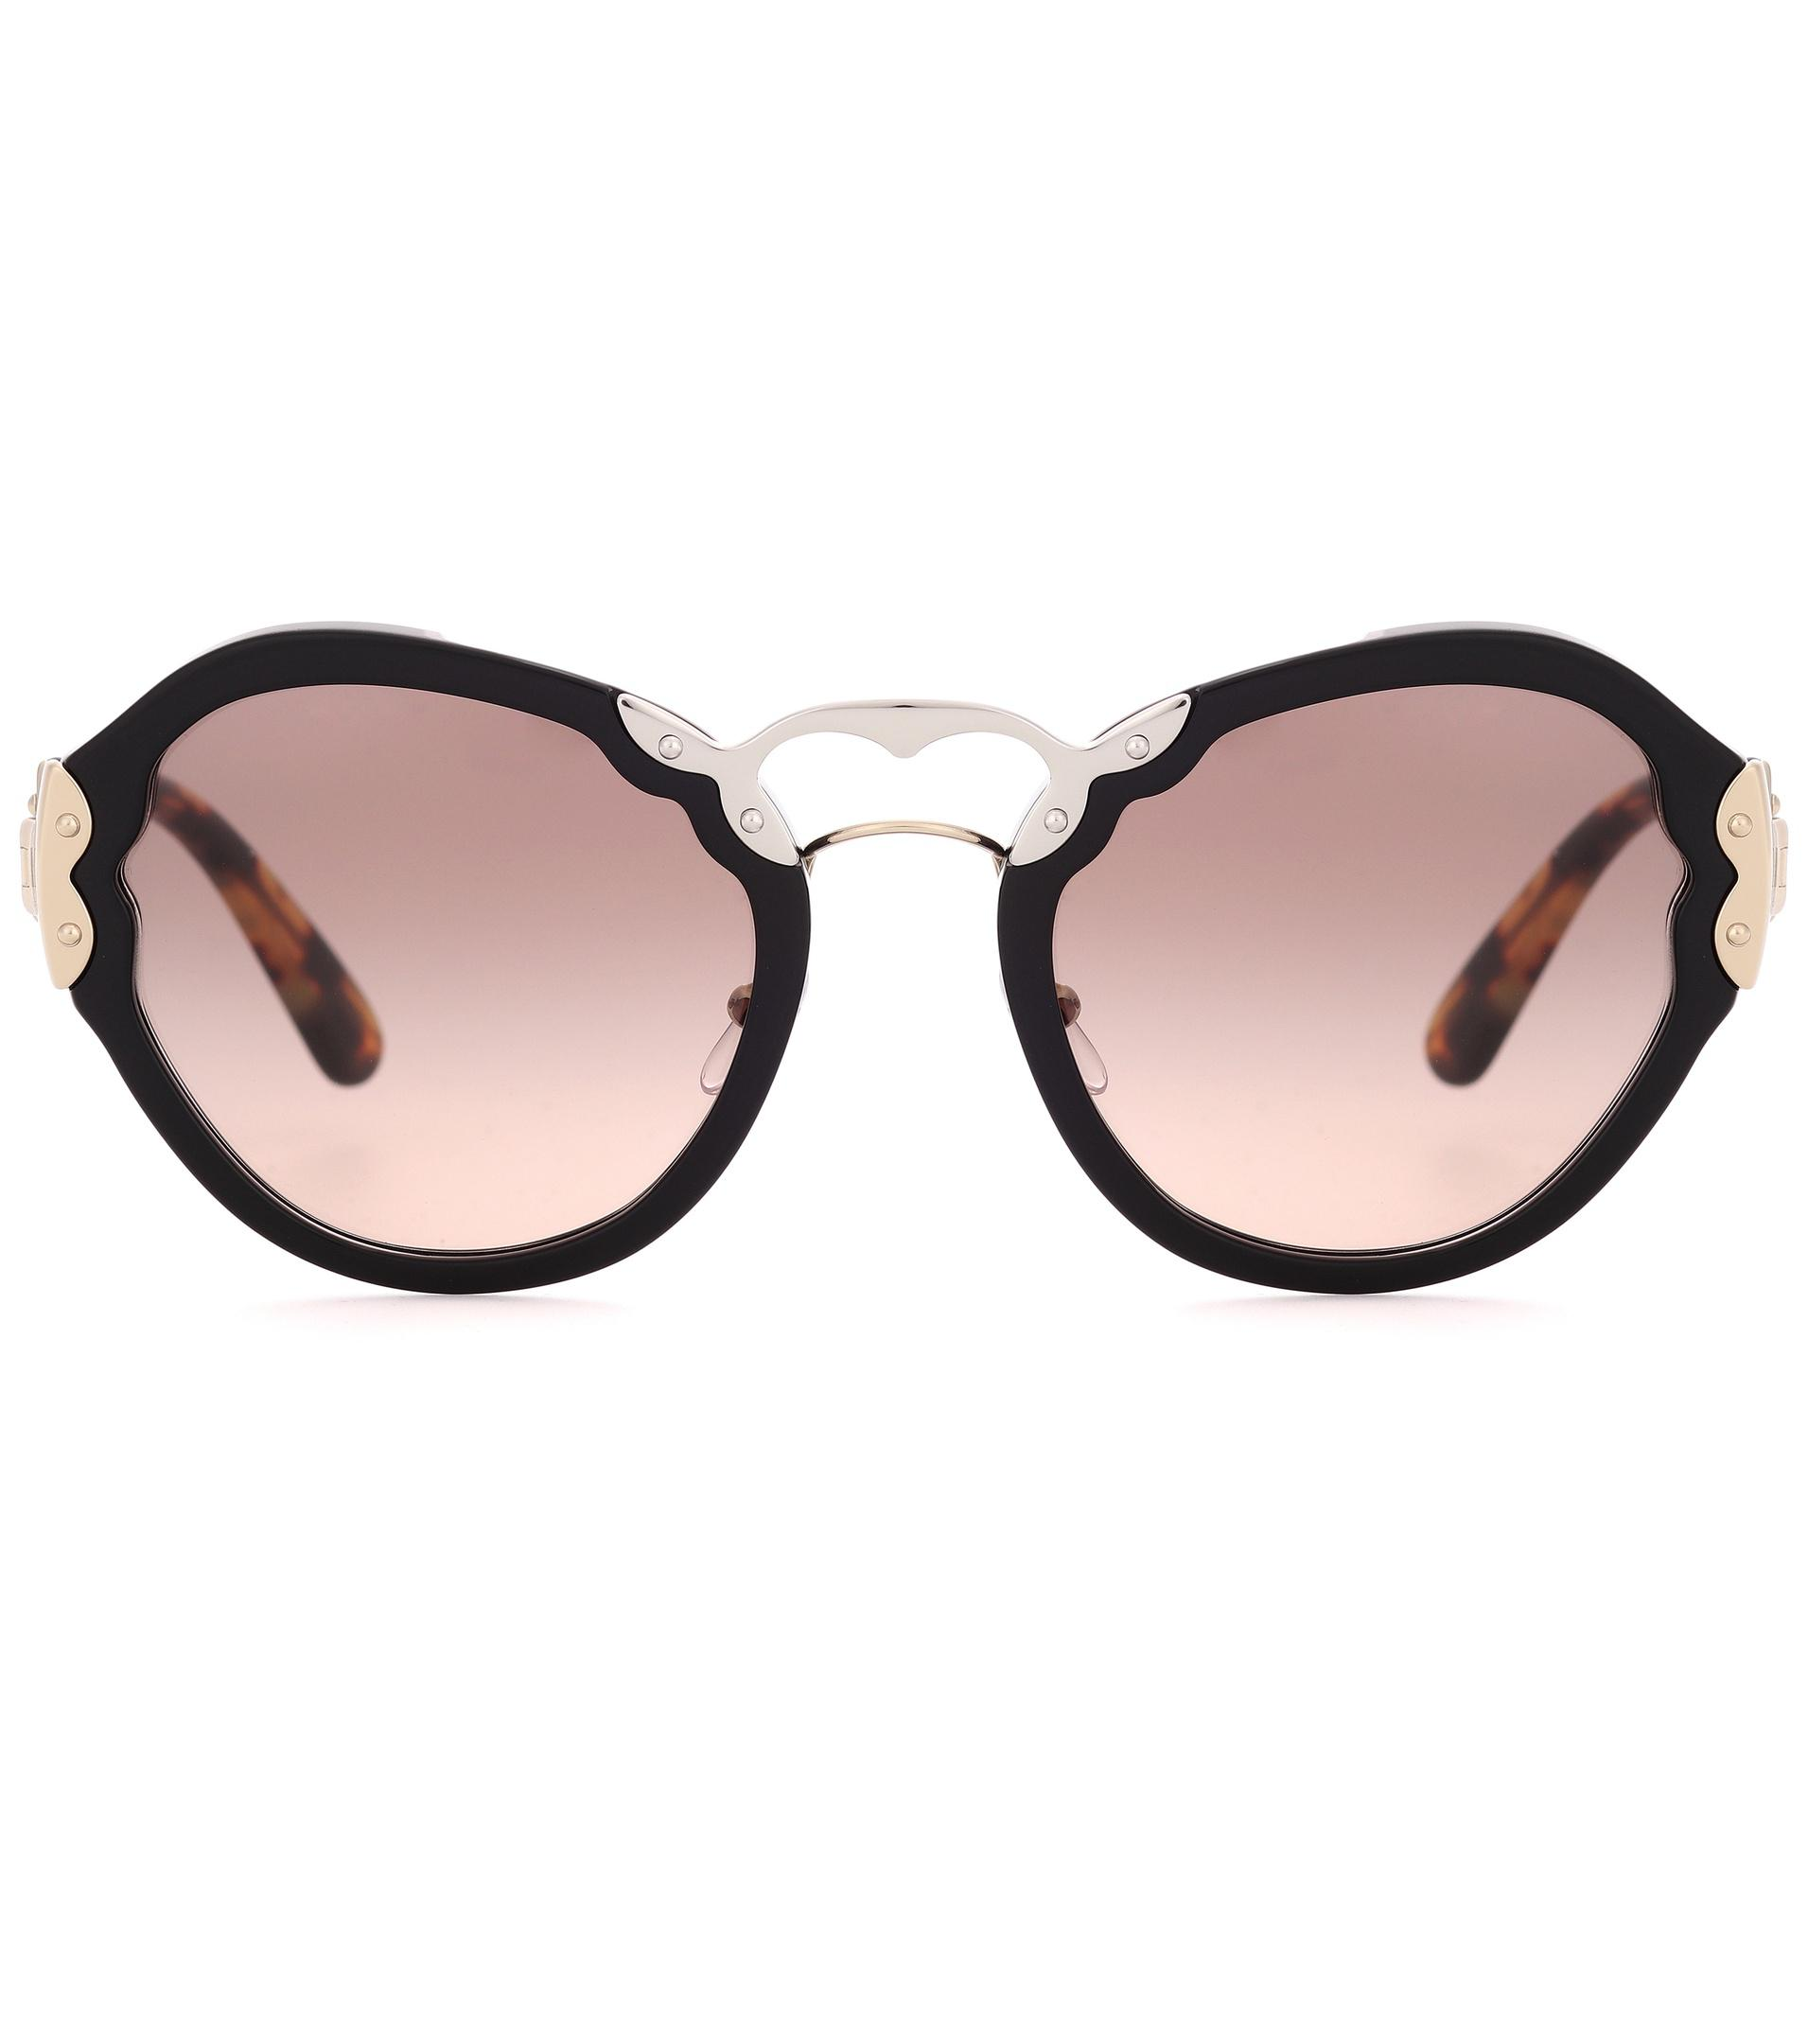 Wanderer Eye Prada Lyst In Black Cat Sunglasses q5CnA